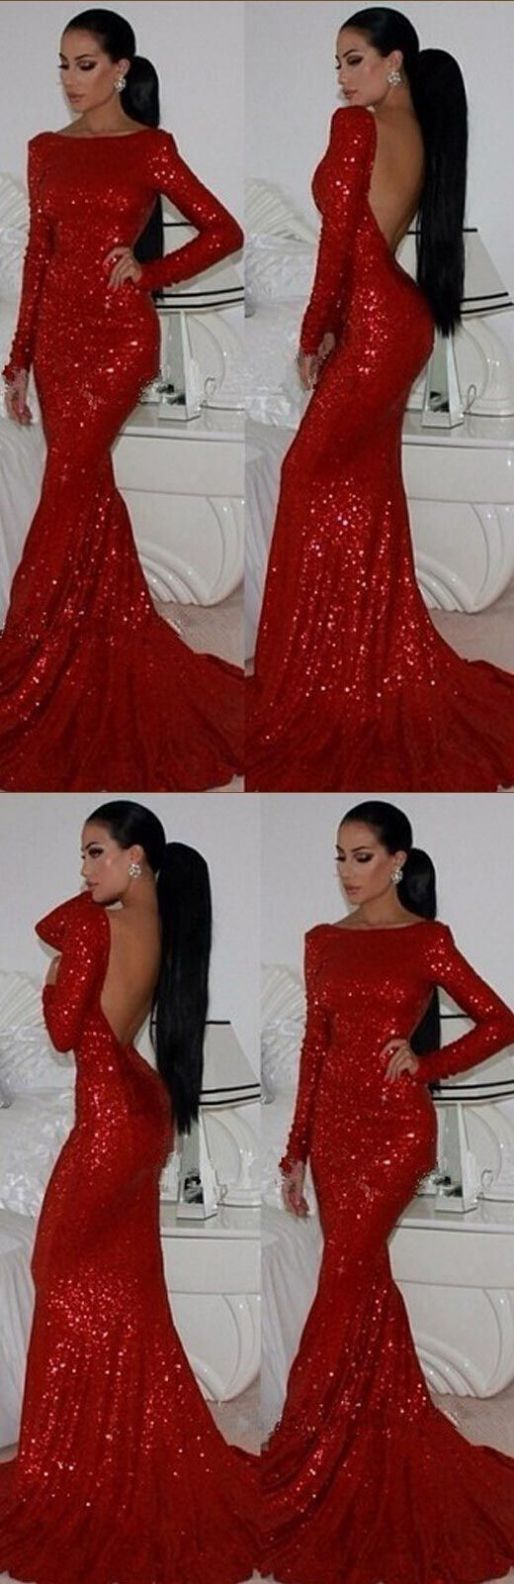 Red Sequins Prom Dress,Backless Mermaid Prom Dress,Custom Made Evening Dress,17279 sold by Fancy Gown. Shop more products from Fancy Gown on Storenvy, the home of independent small businesses all over the world.